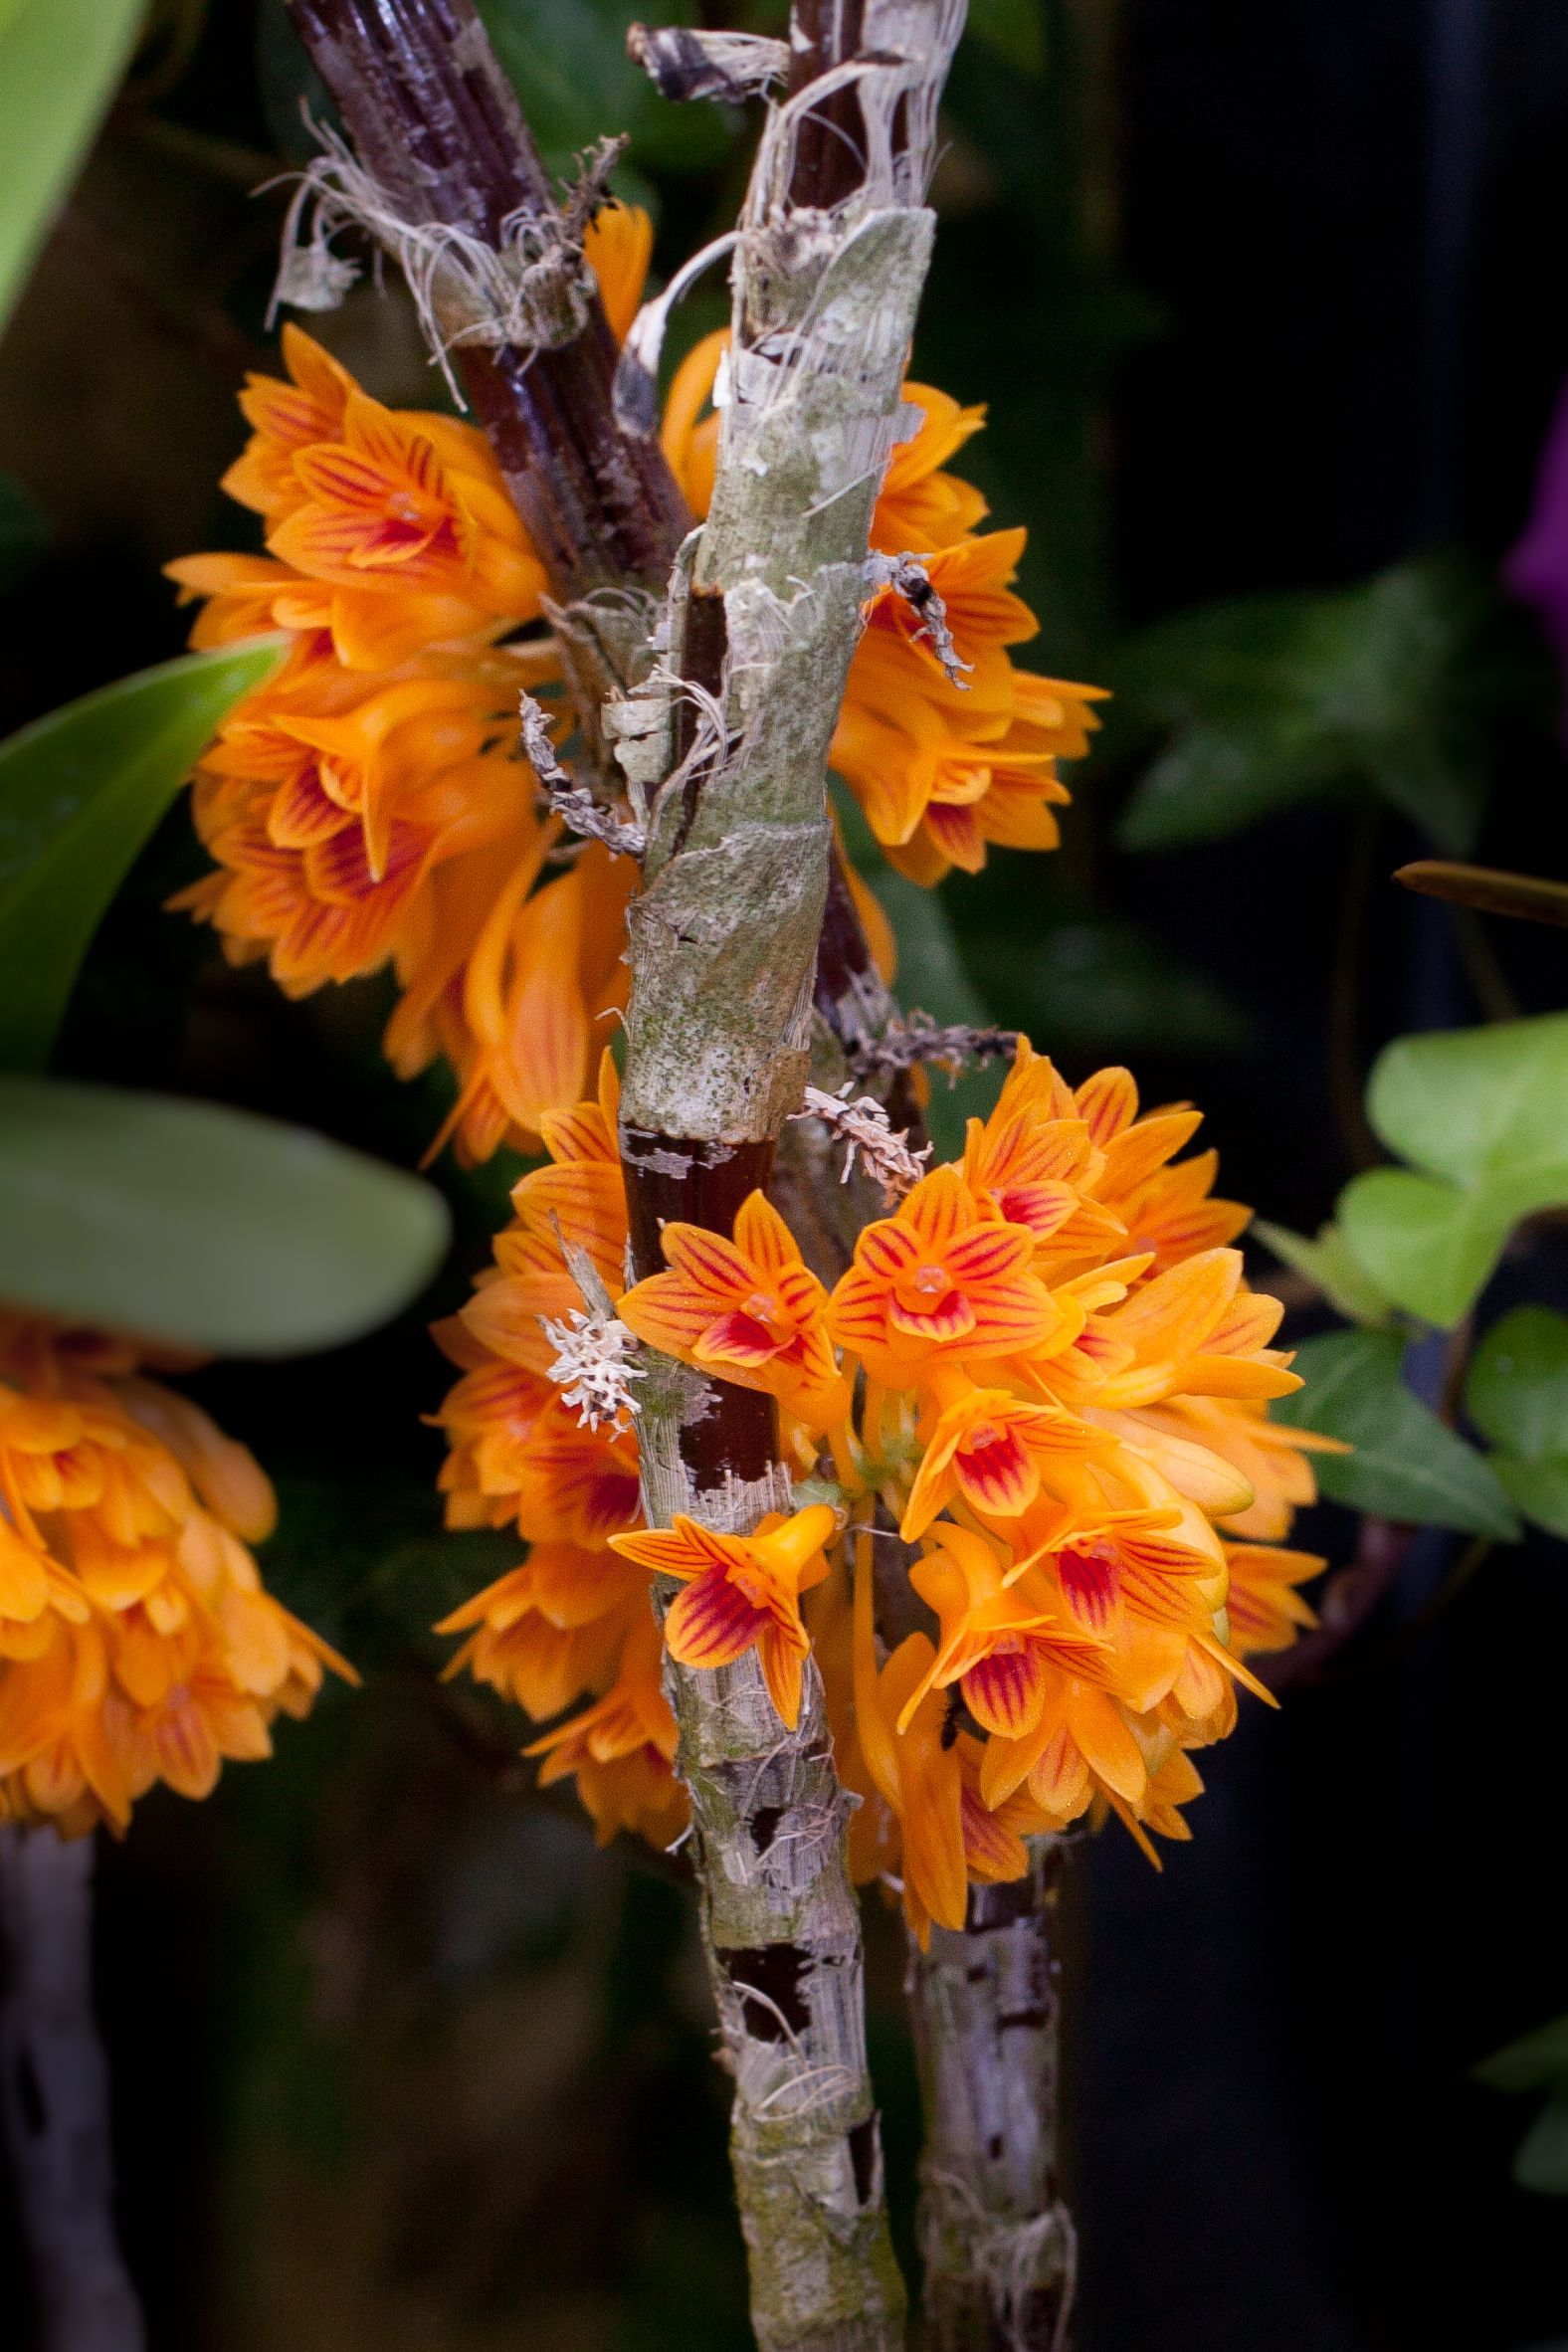 Dendrobium Bullenianum Bright Orange Clusters Of Flowers Standout From The Stems Of This Orchid Longwoodgard Unusual Flowers Orchid Plants Beautiful Orchids